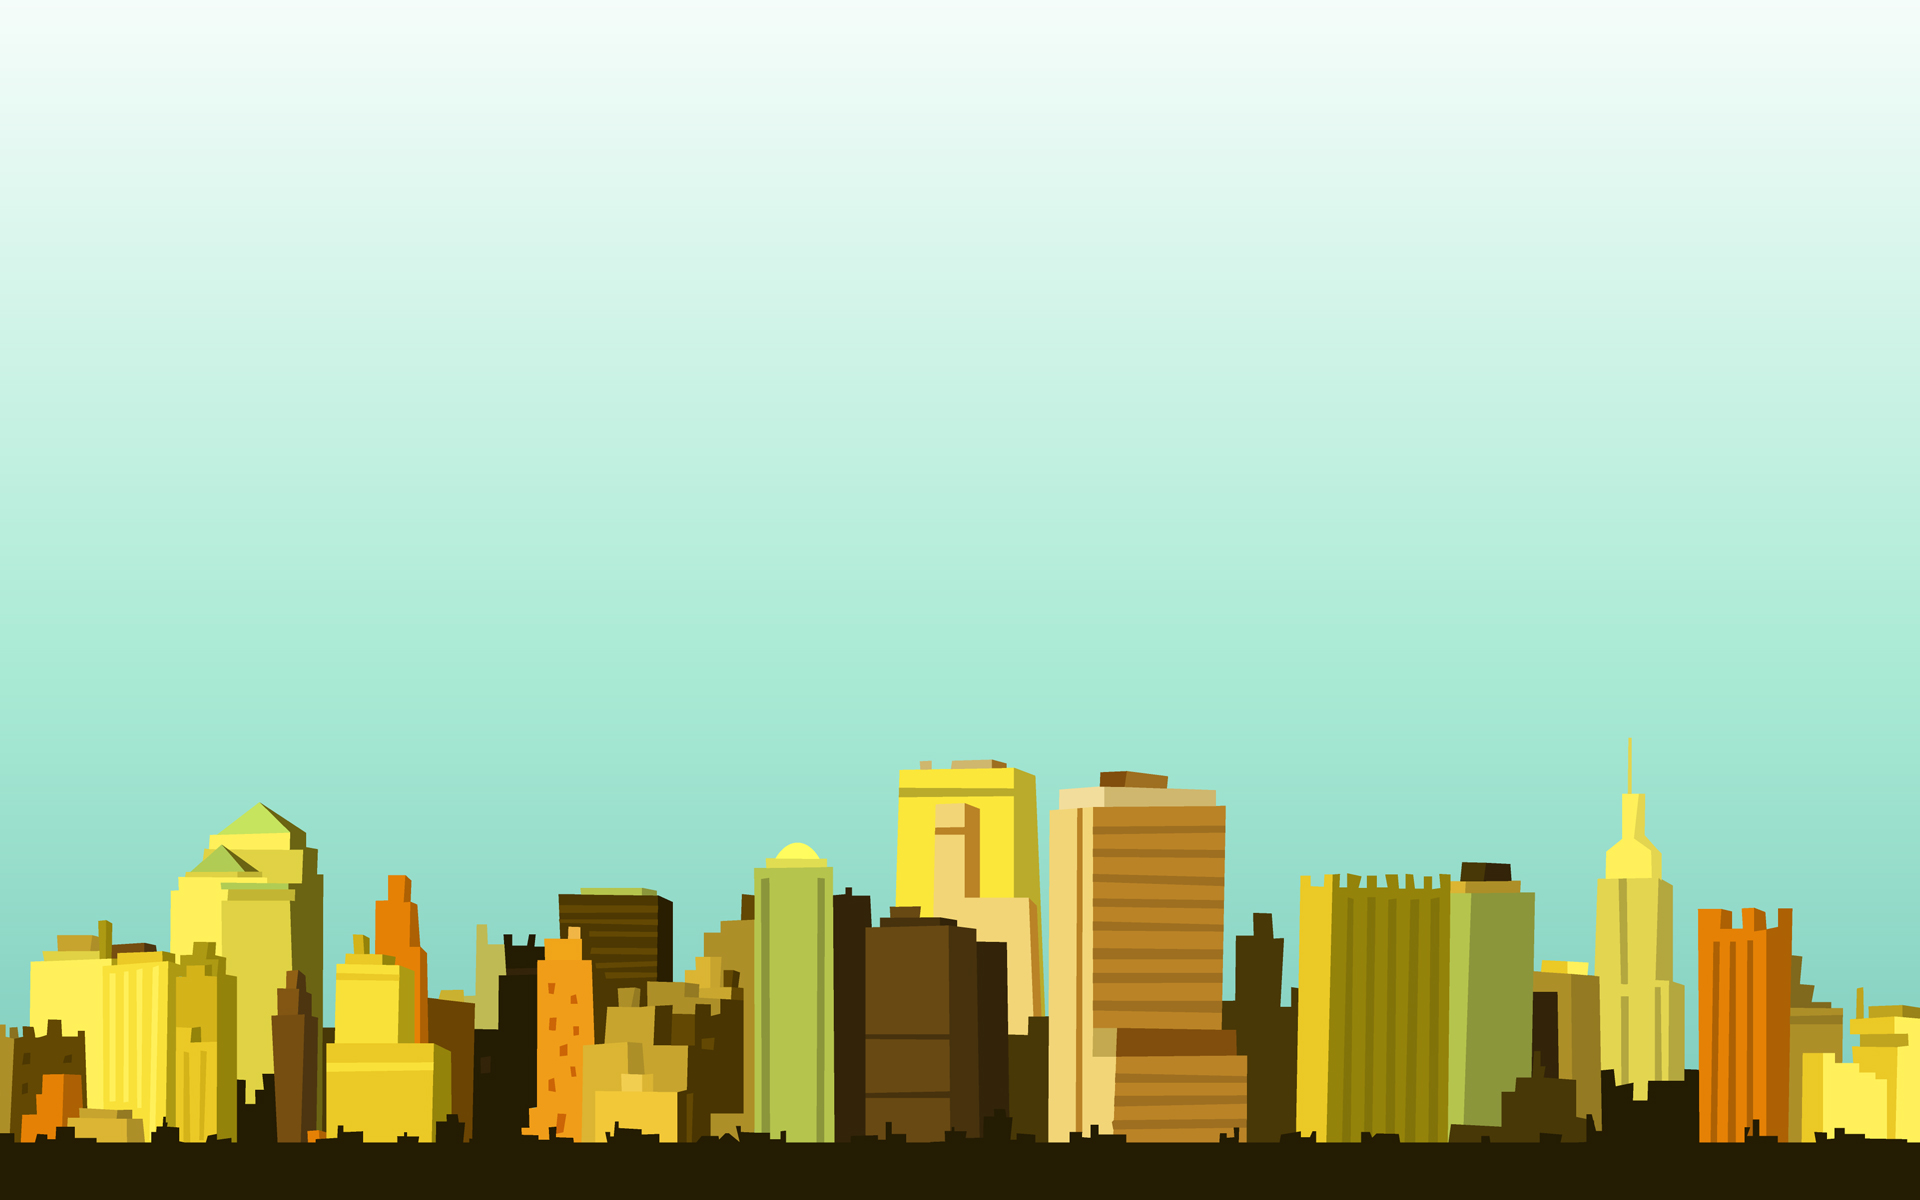 8 bit city background  Search Results  Dunia Photo